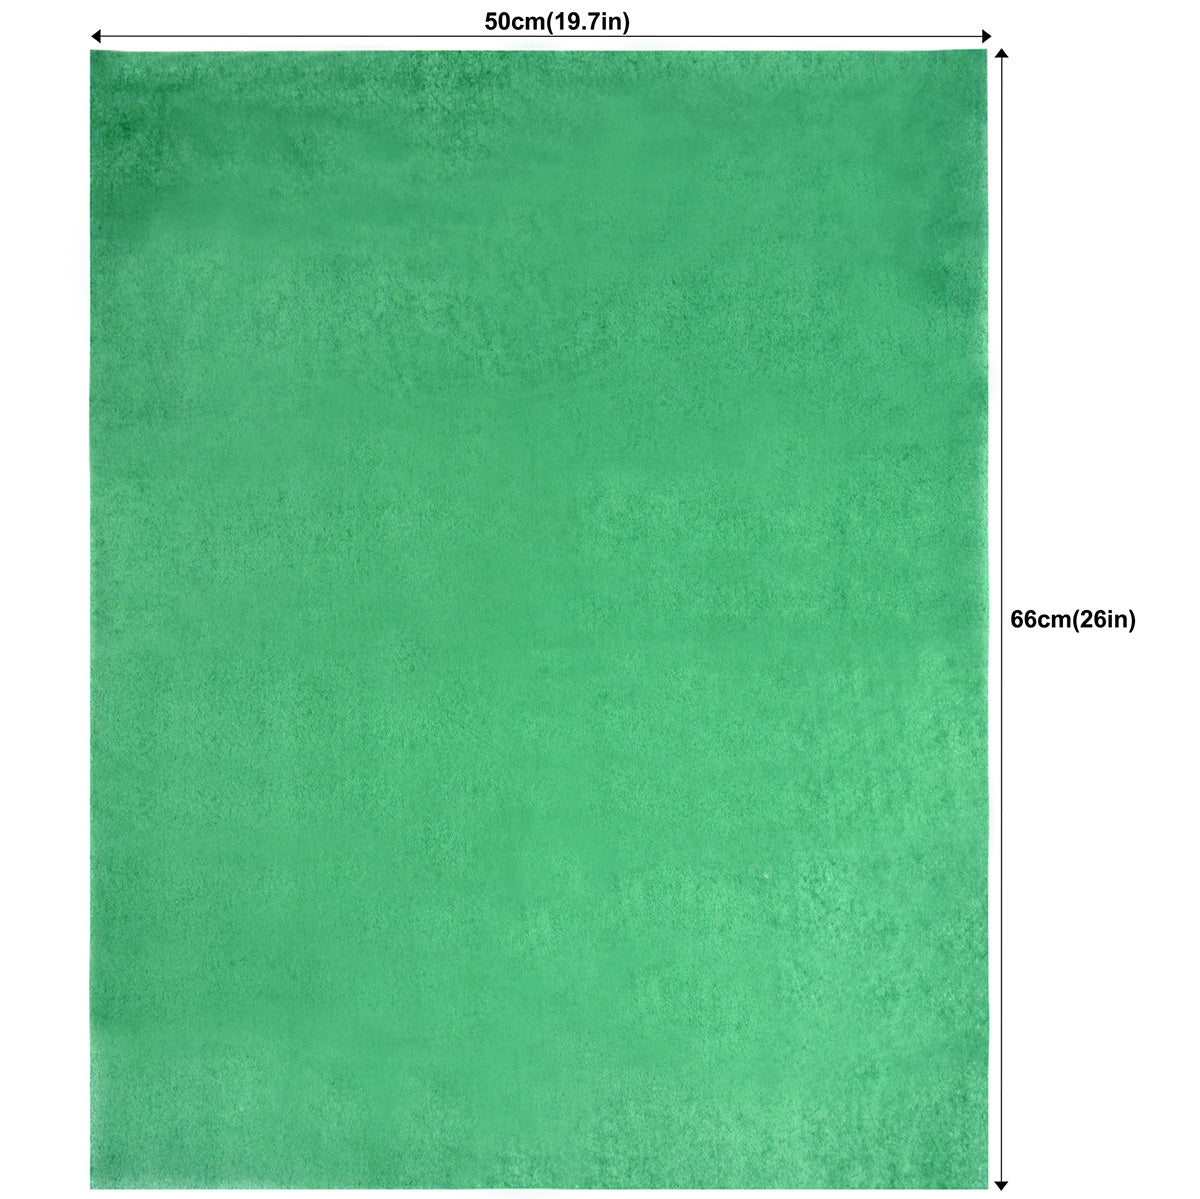 50 Sheets Dark Green Wrapping Tissue Paper